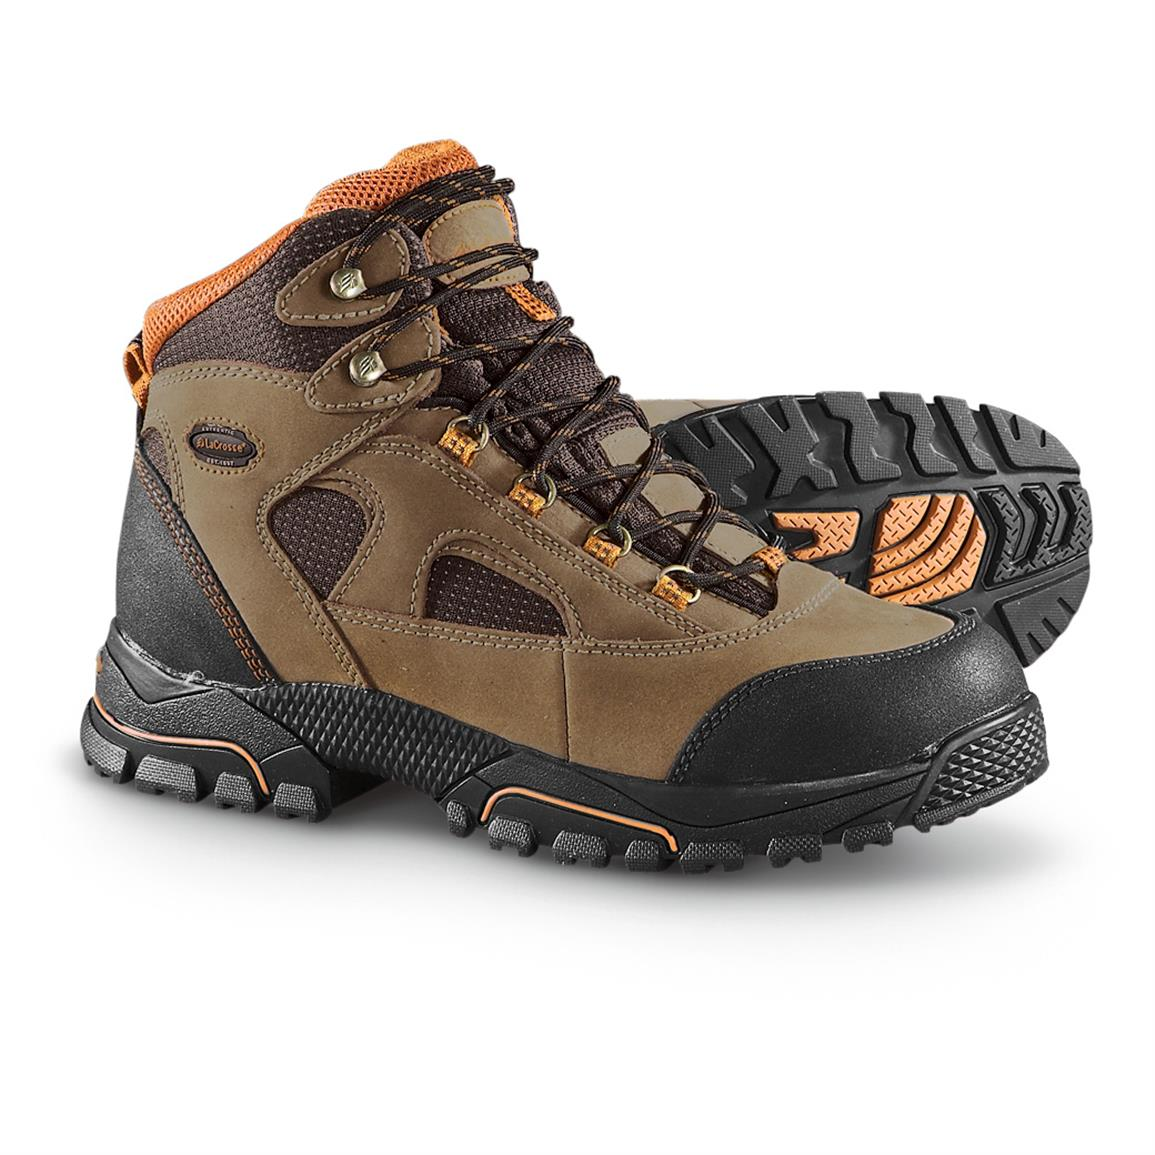 Men's Lacrosse® Steel Toe Work Boots, Brown